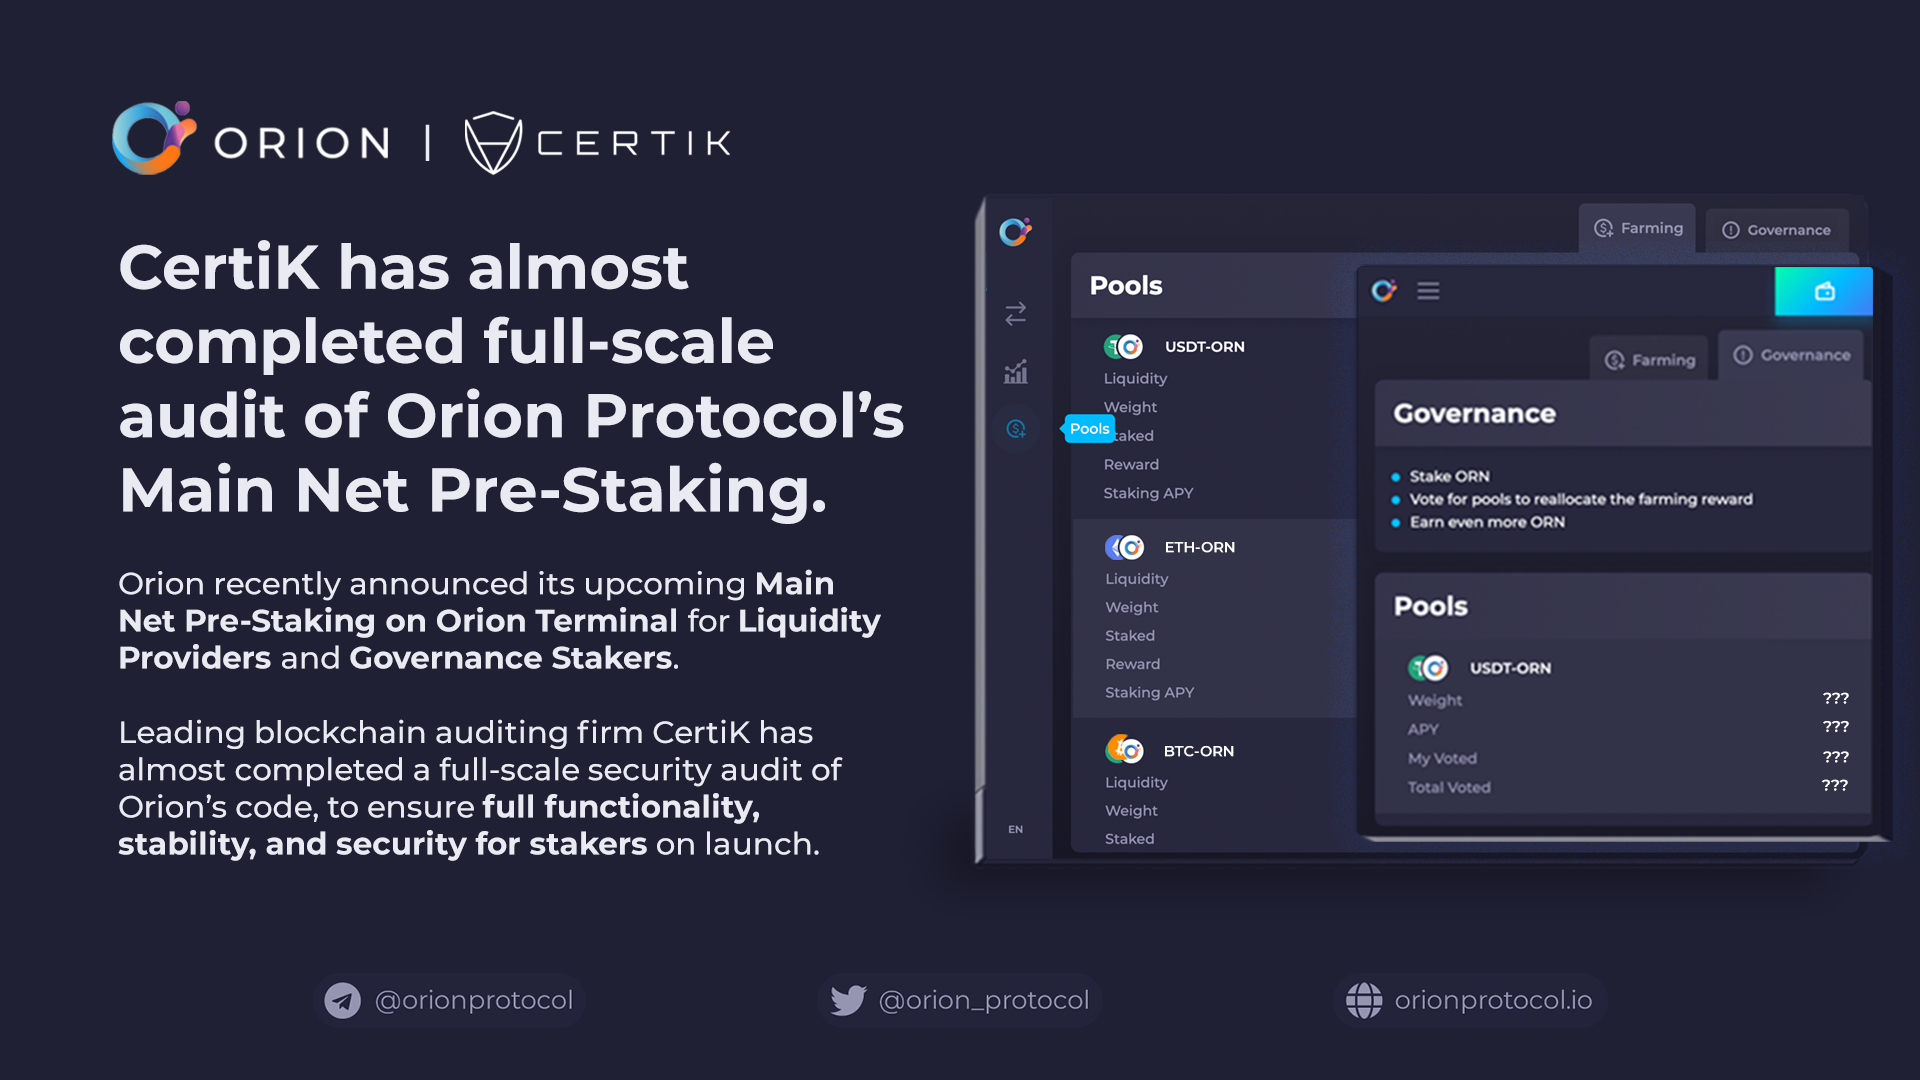 CertiK almost completed full-scale audit of Orion's Main Net Pre-Staking